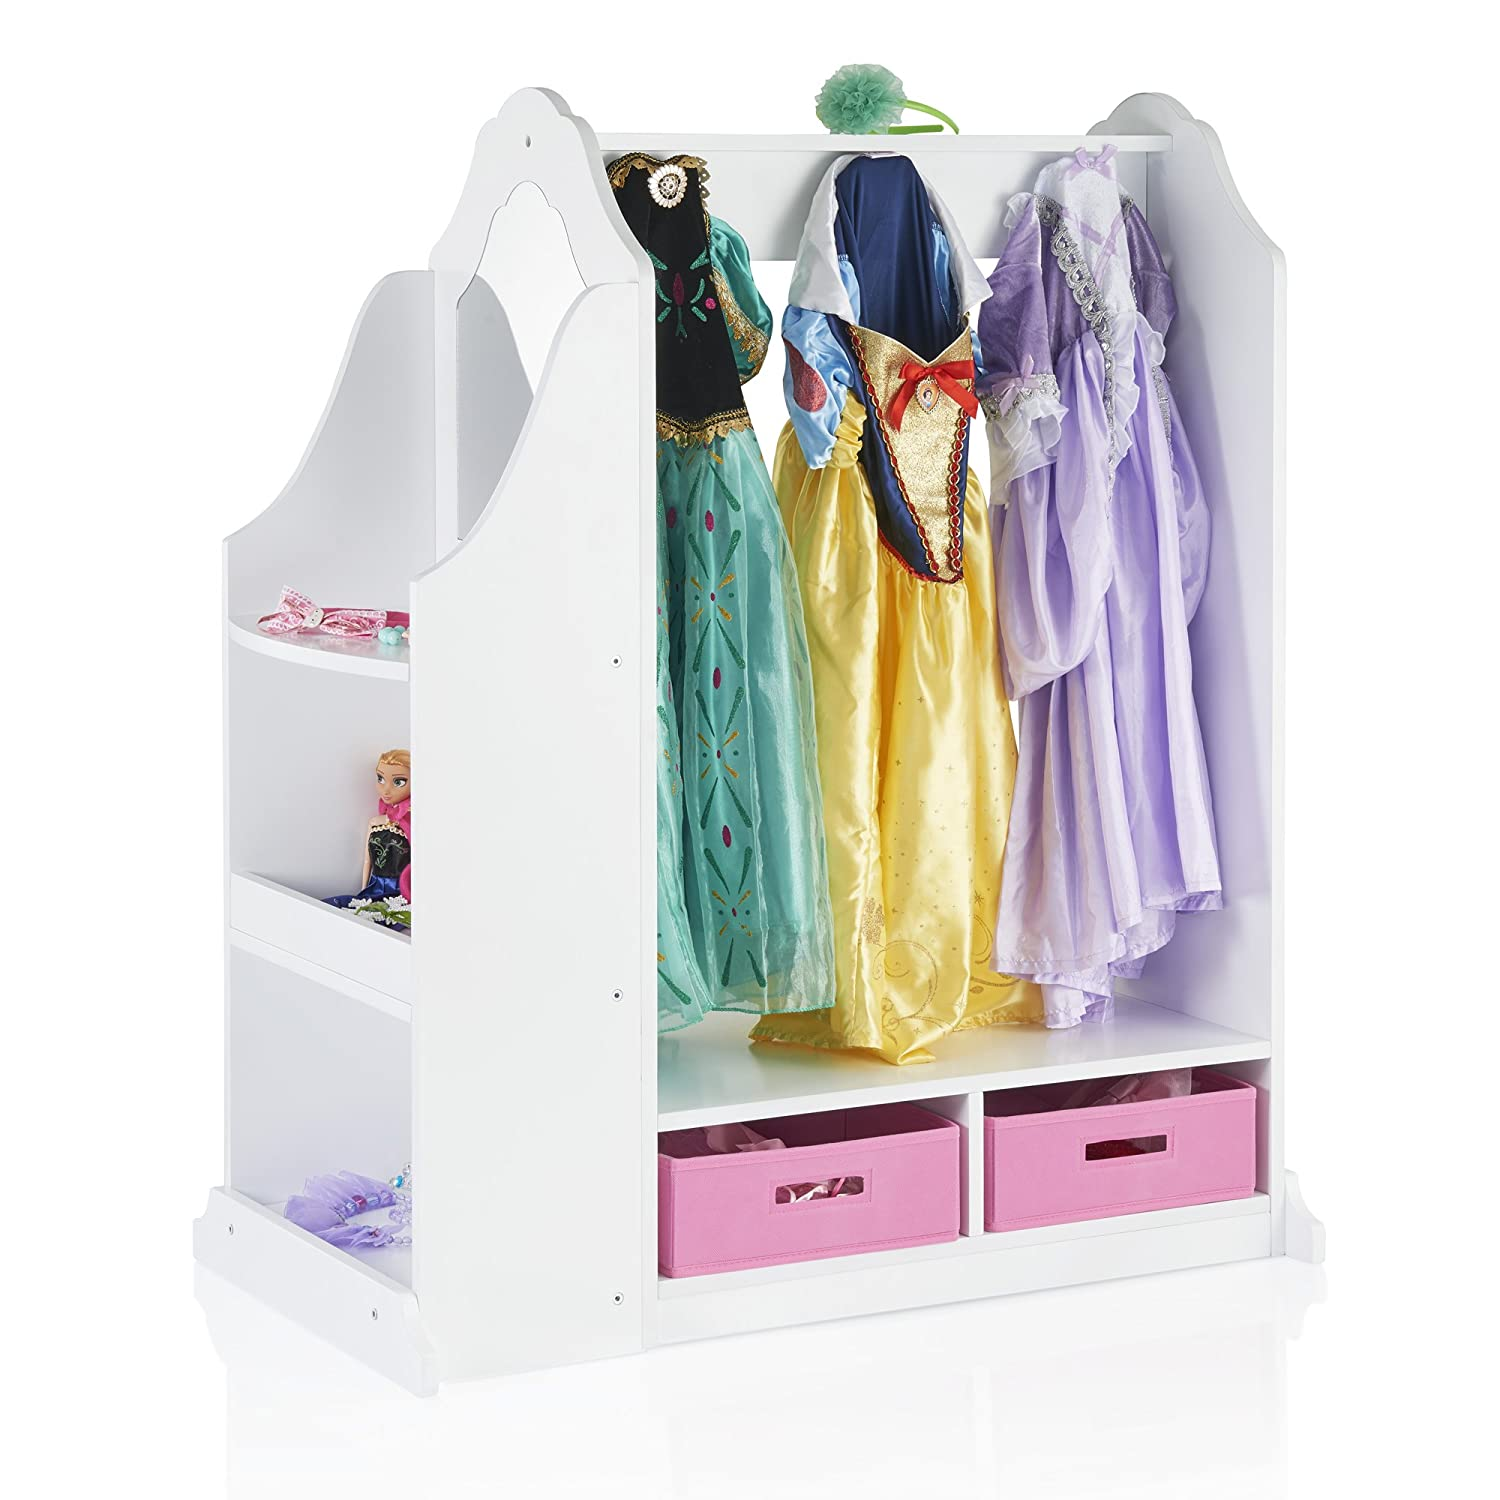 Guidecraft Dress up Vanity – White: Dresser, Armoire with Storage Bins and Mirror for Kids, Toddlers Playroom Organizer, Children Furniture G99420